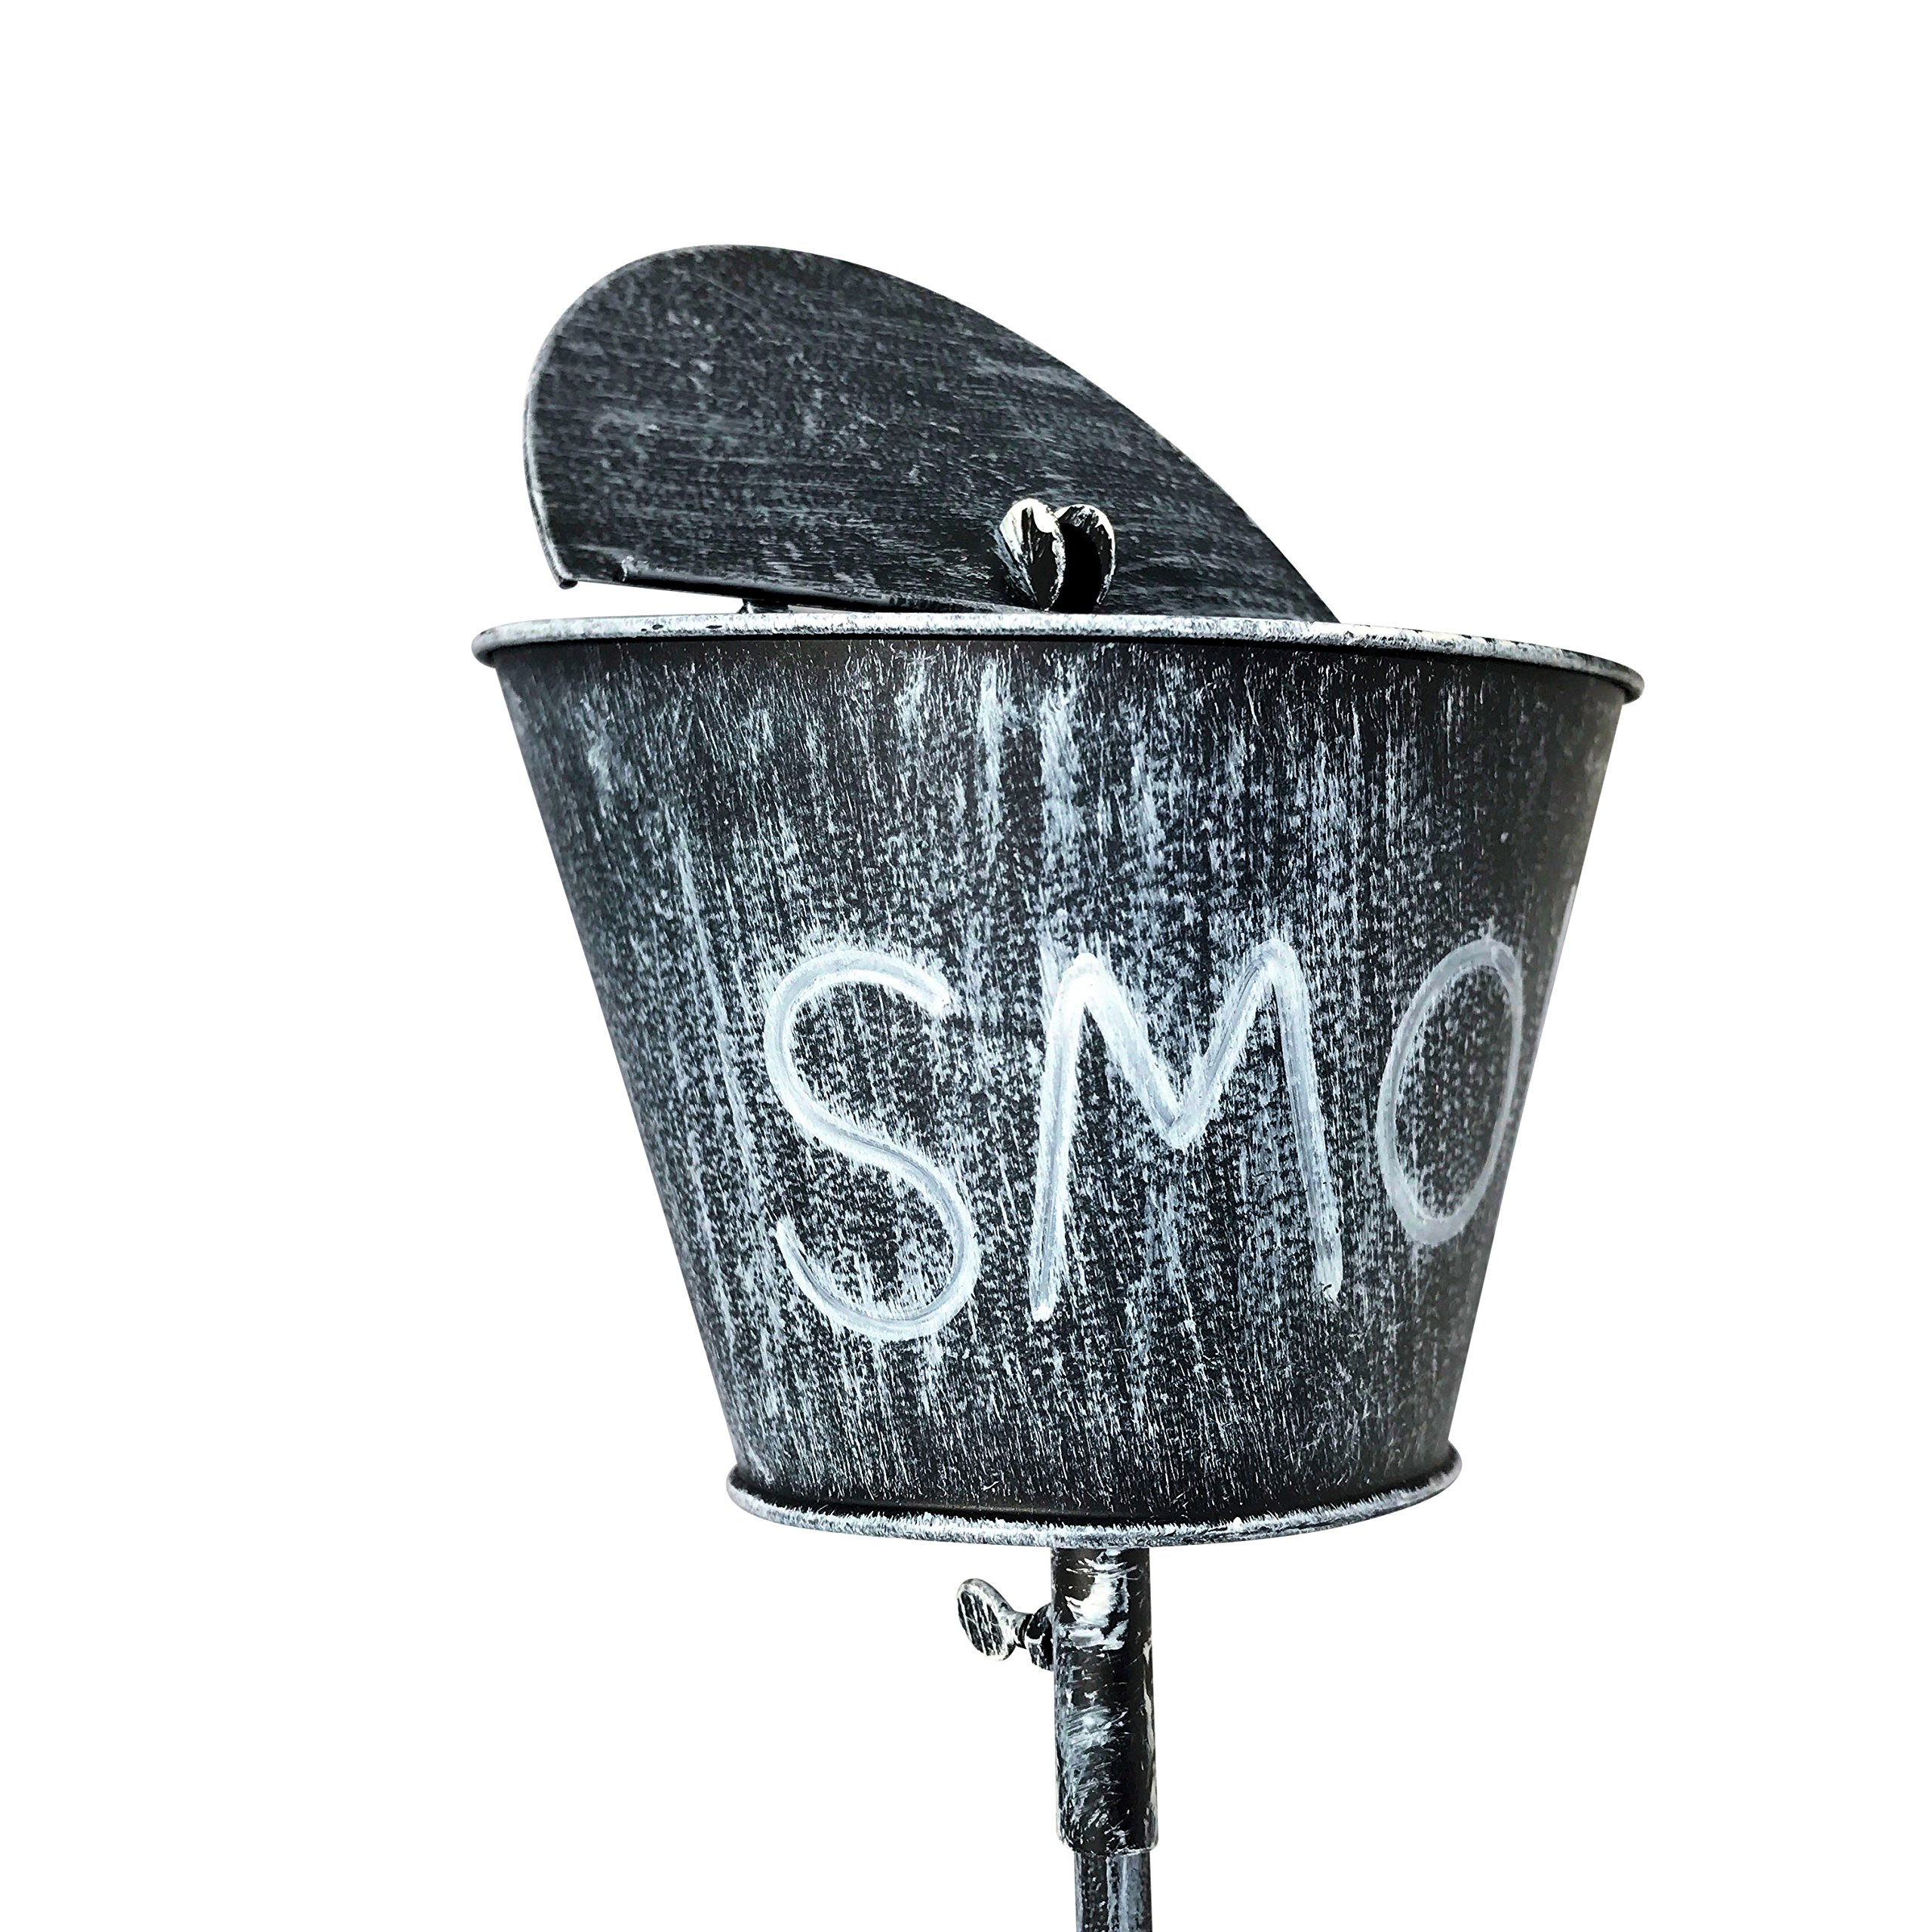 WHW Whole House Worlds Outdoor Smoke Ashtray, Lidded Bucket on Stake with Prong Post, Garden Party Style, Gray Lacquered Iron, Rustic and Weathered Patina, 6 D x 43 1/4 H Inches